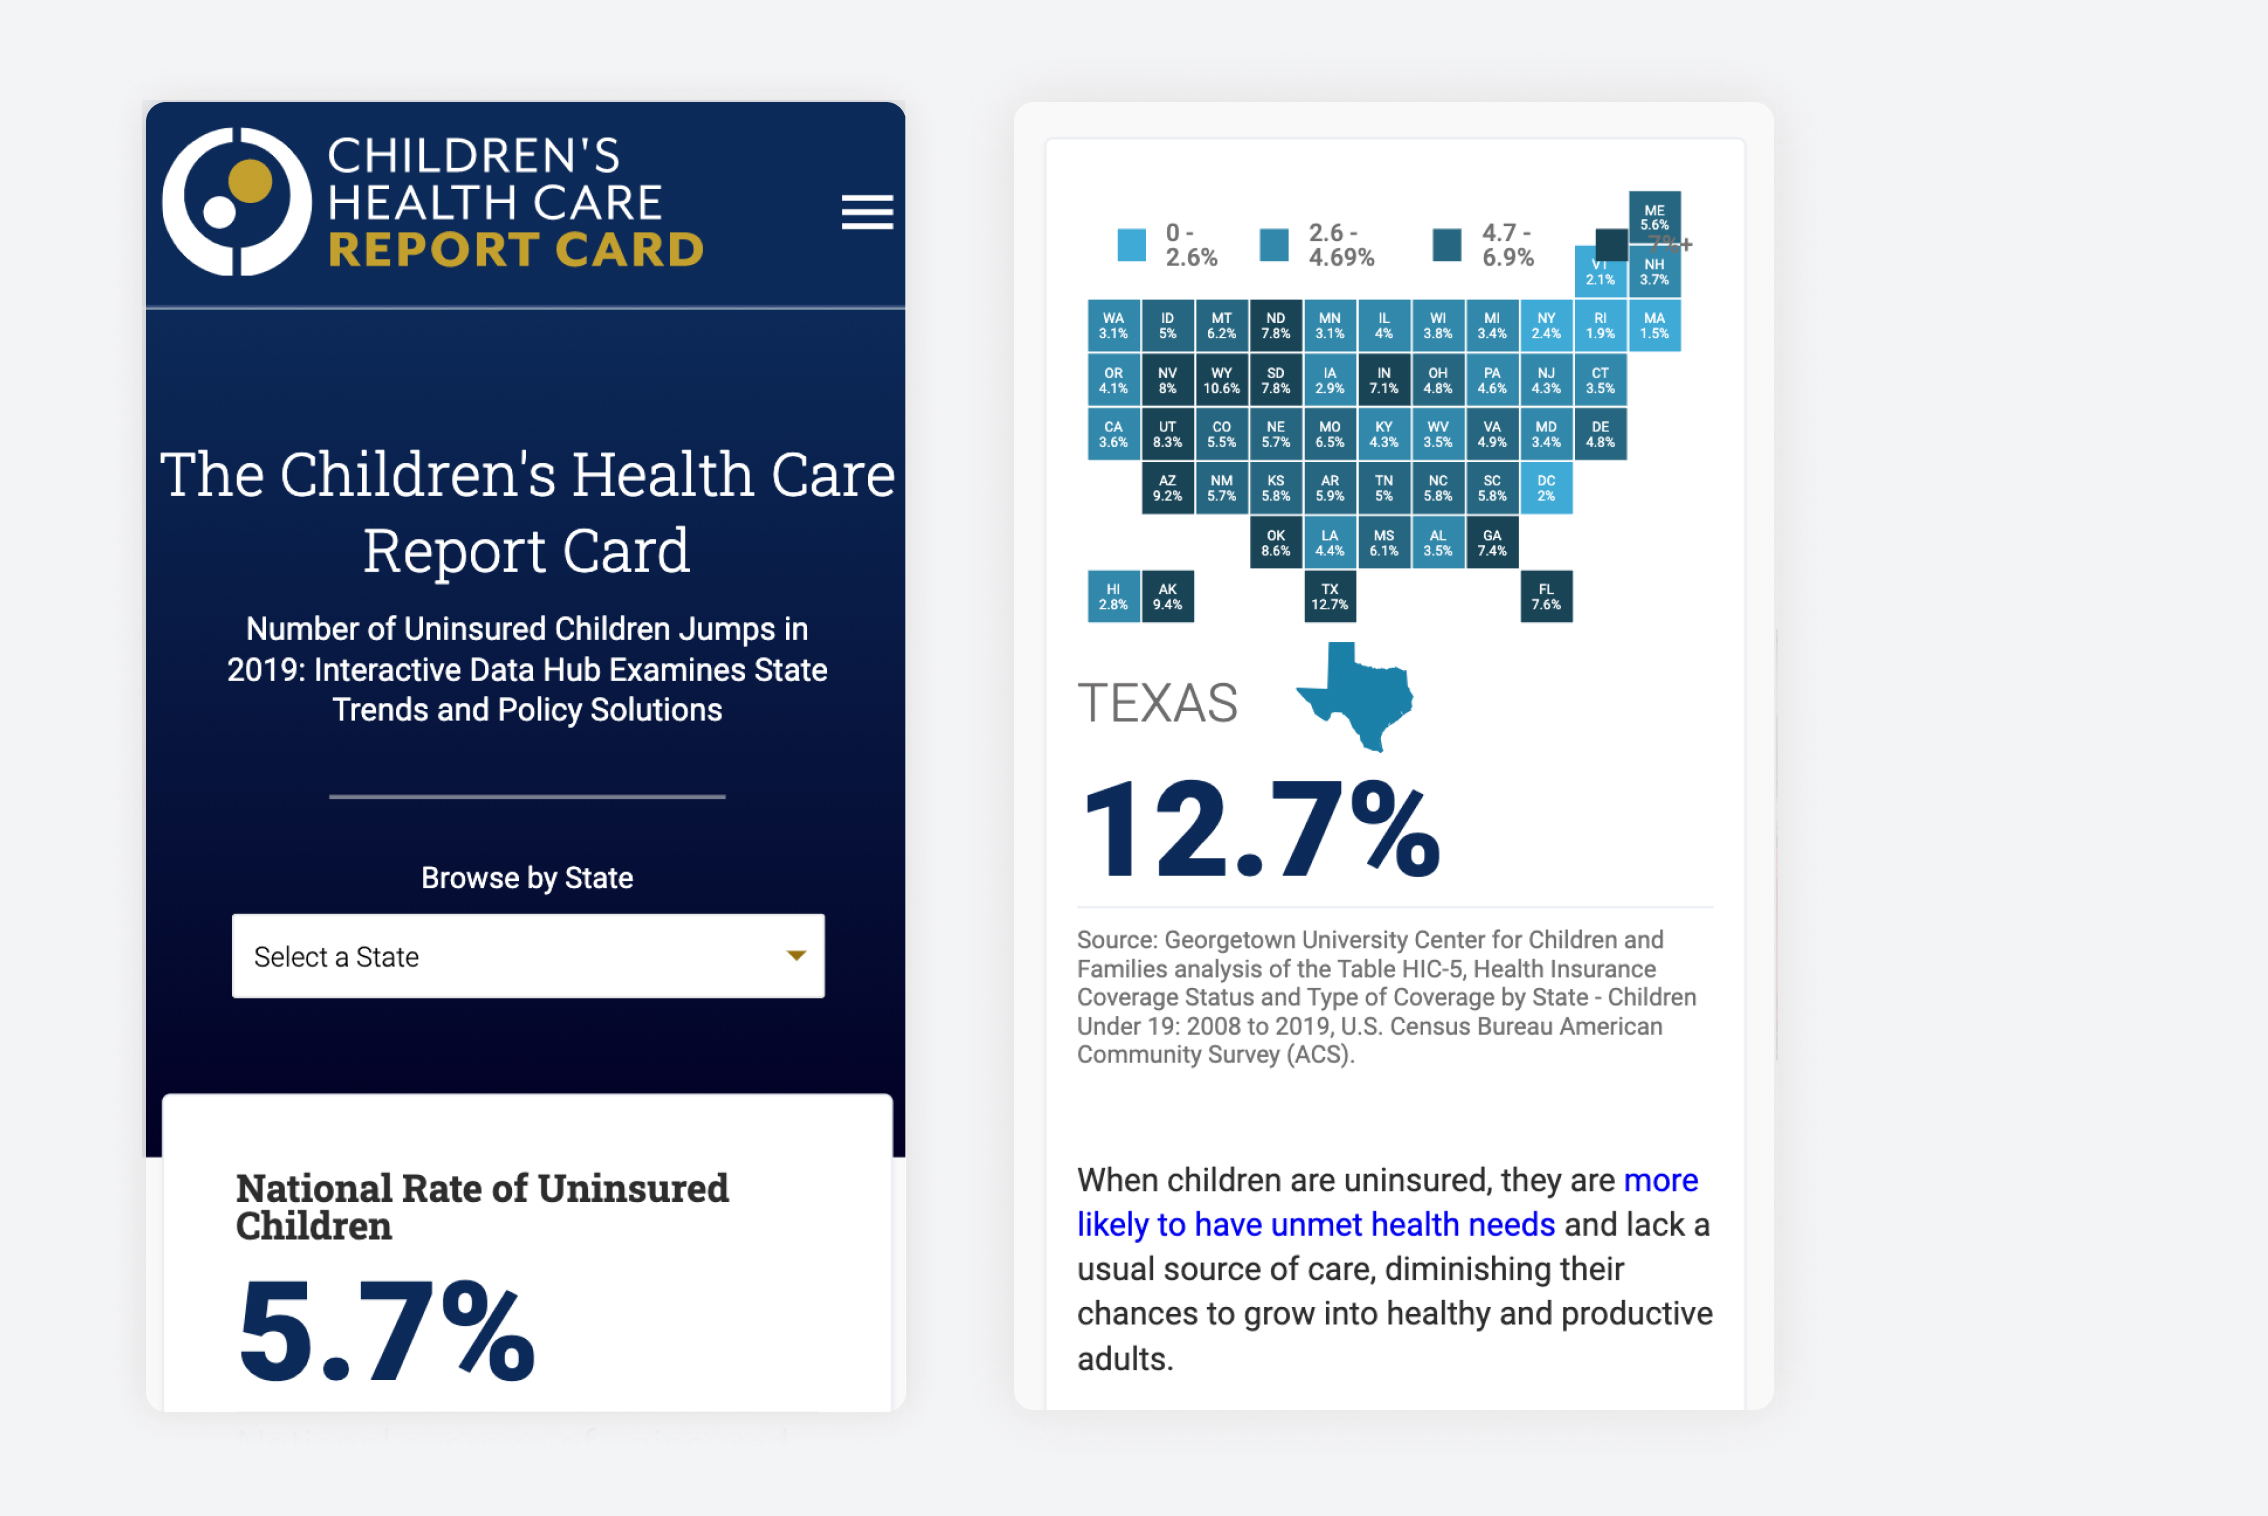 Two views of the mobile site, one the front page with the title of the report card and a search box to browse by state. The other is a graphical representation of the United States as shaded squares, with statistics within each one and a large callout at the bottom about Texas